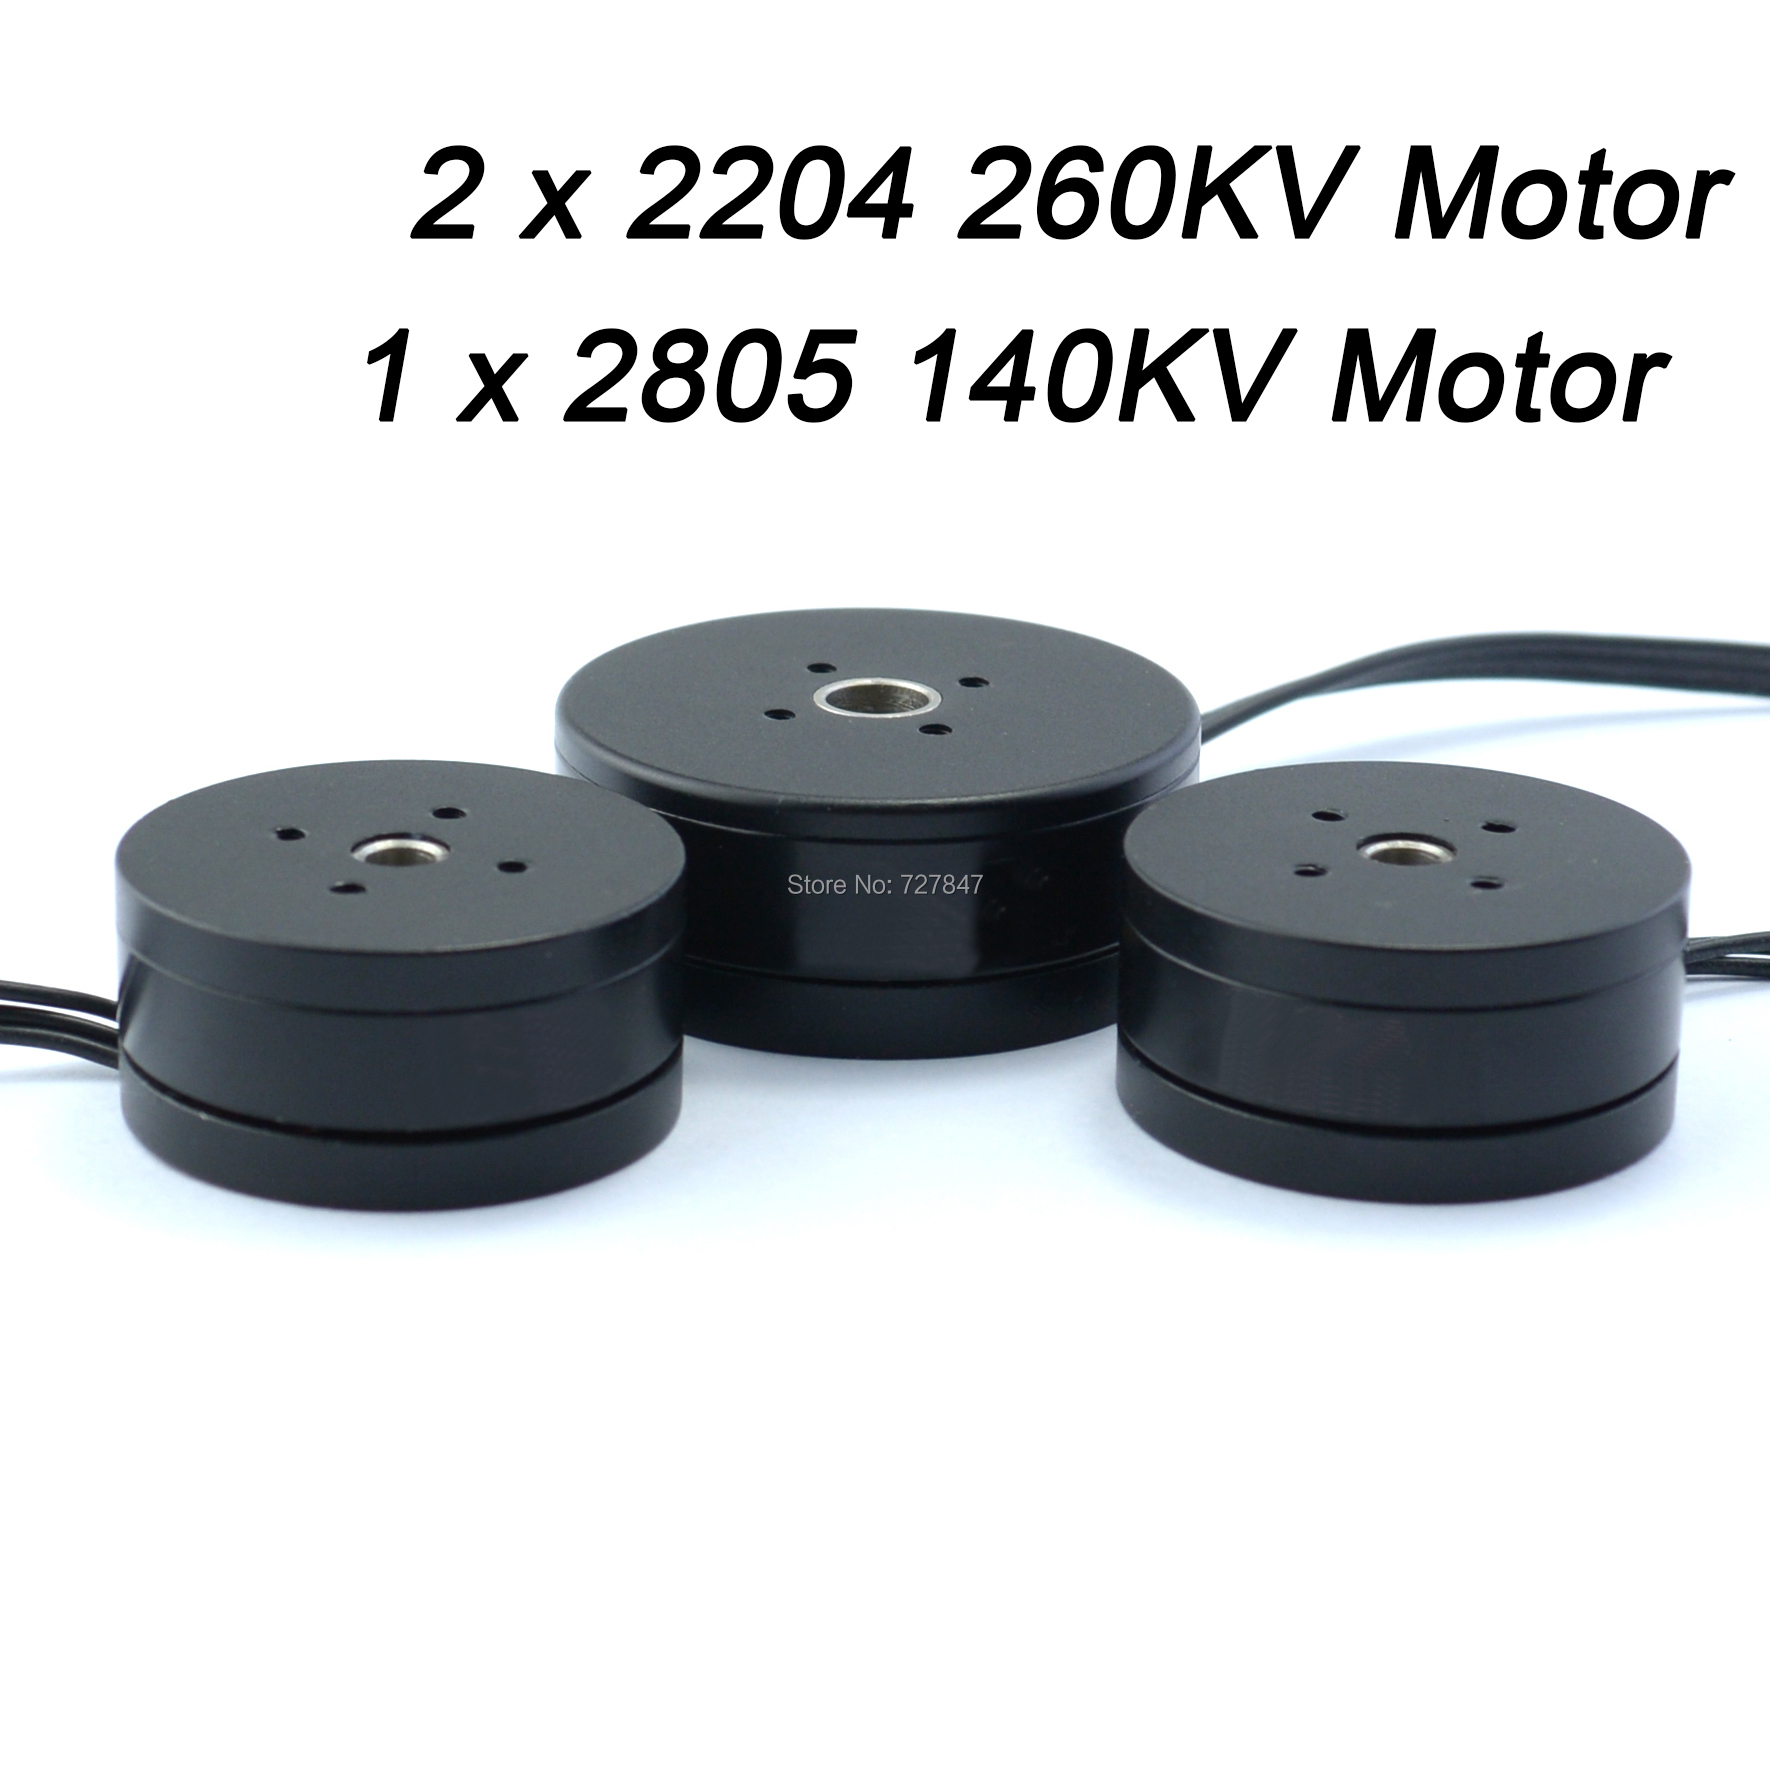 2 X 2204 260kv Motor + 1 X 2805 140kv  Brushless Gimbal  Motor  For  3 Axis Brushless Gimbal